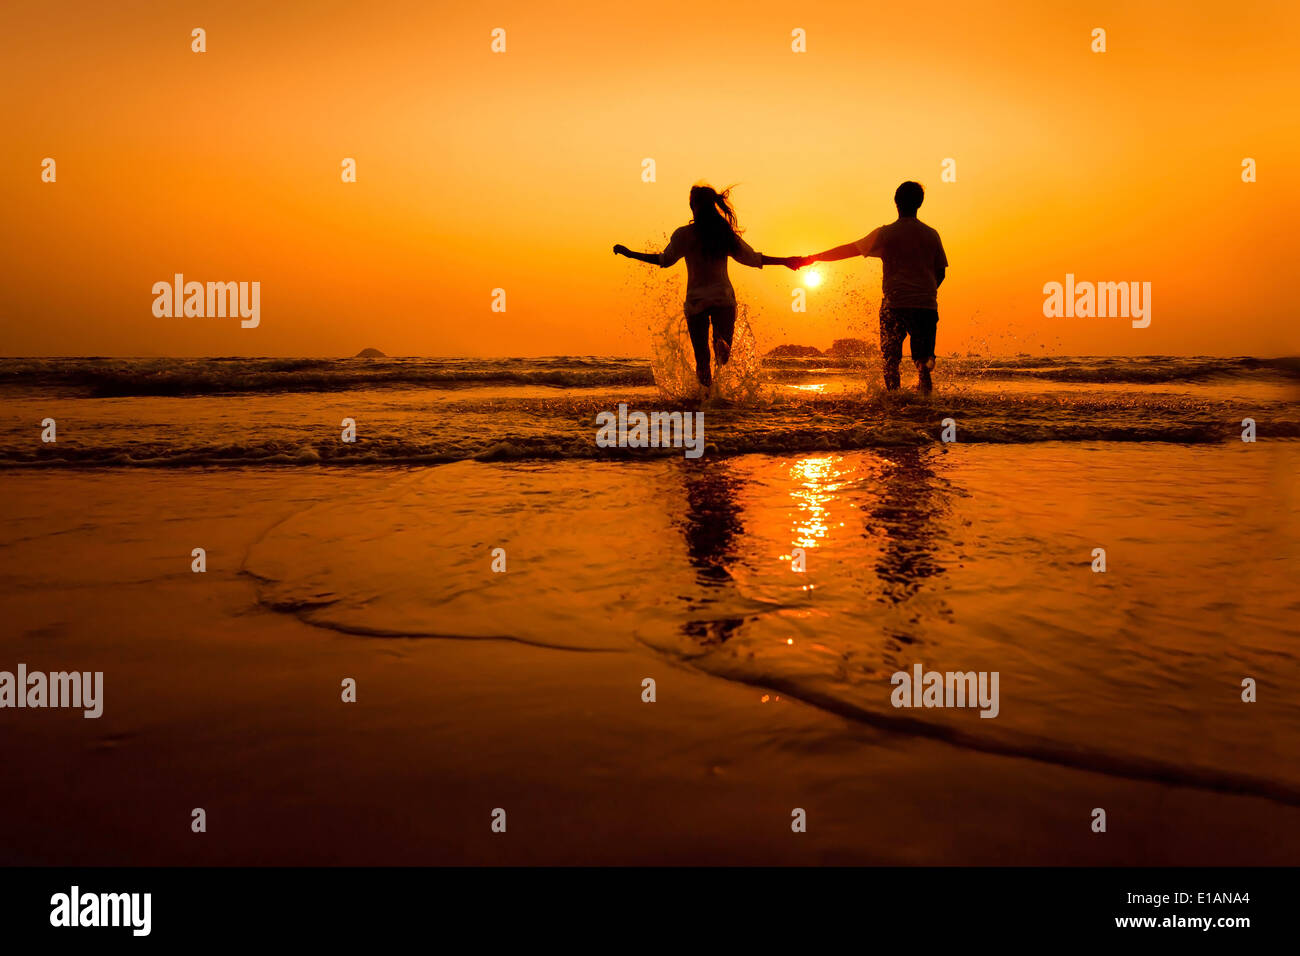 silhouettes of couple running to the sea on the beach at sunset - Stock Image